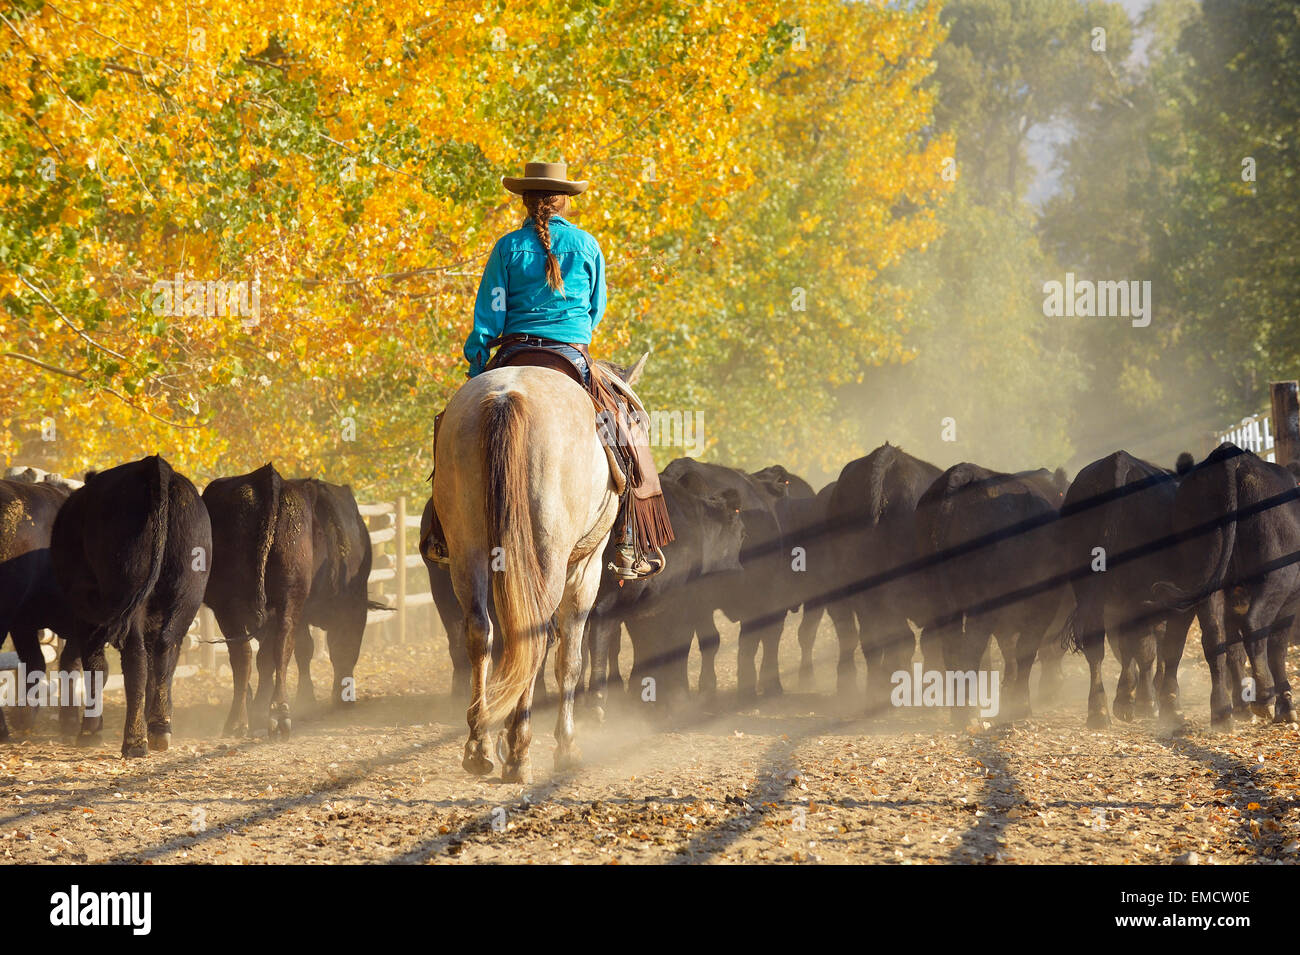 USA, Wyoming, cowgirl riding horse and herding cattles - Stock Image